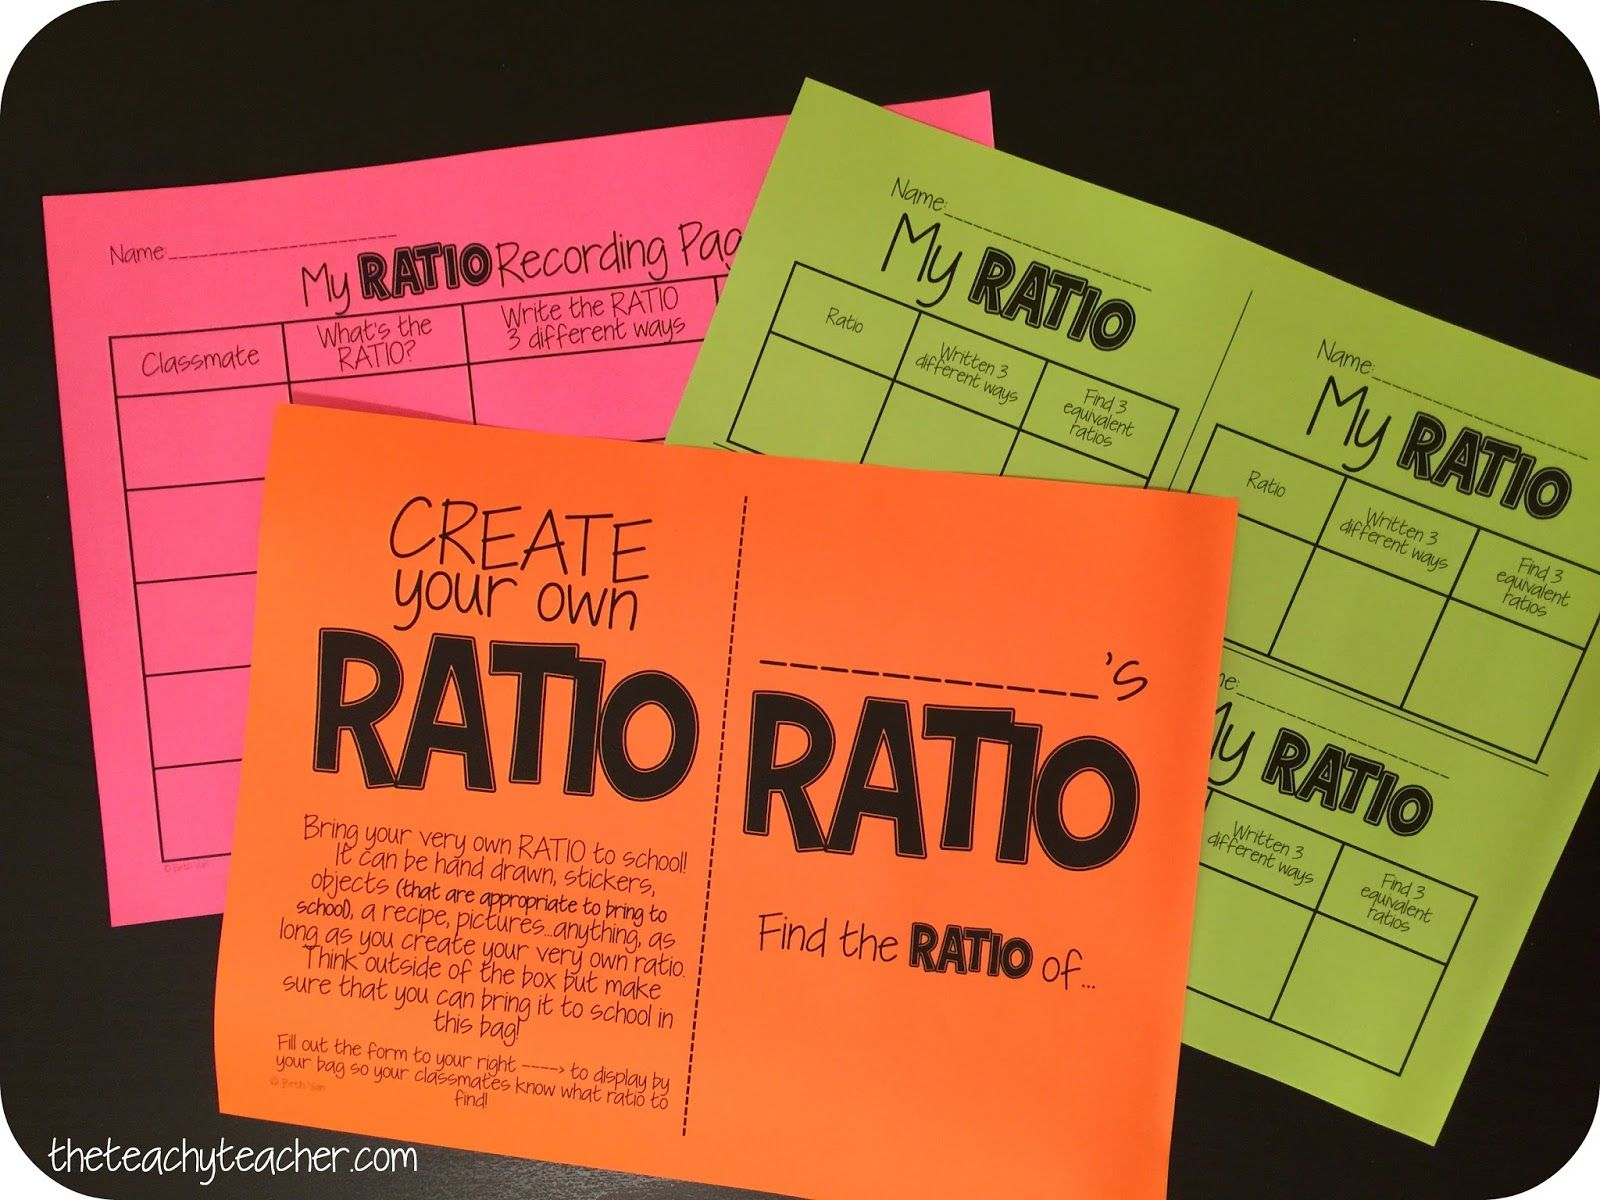 Create Your Own Ratio With Images